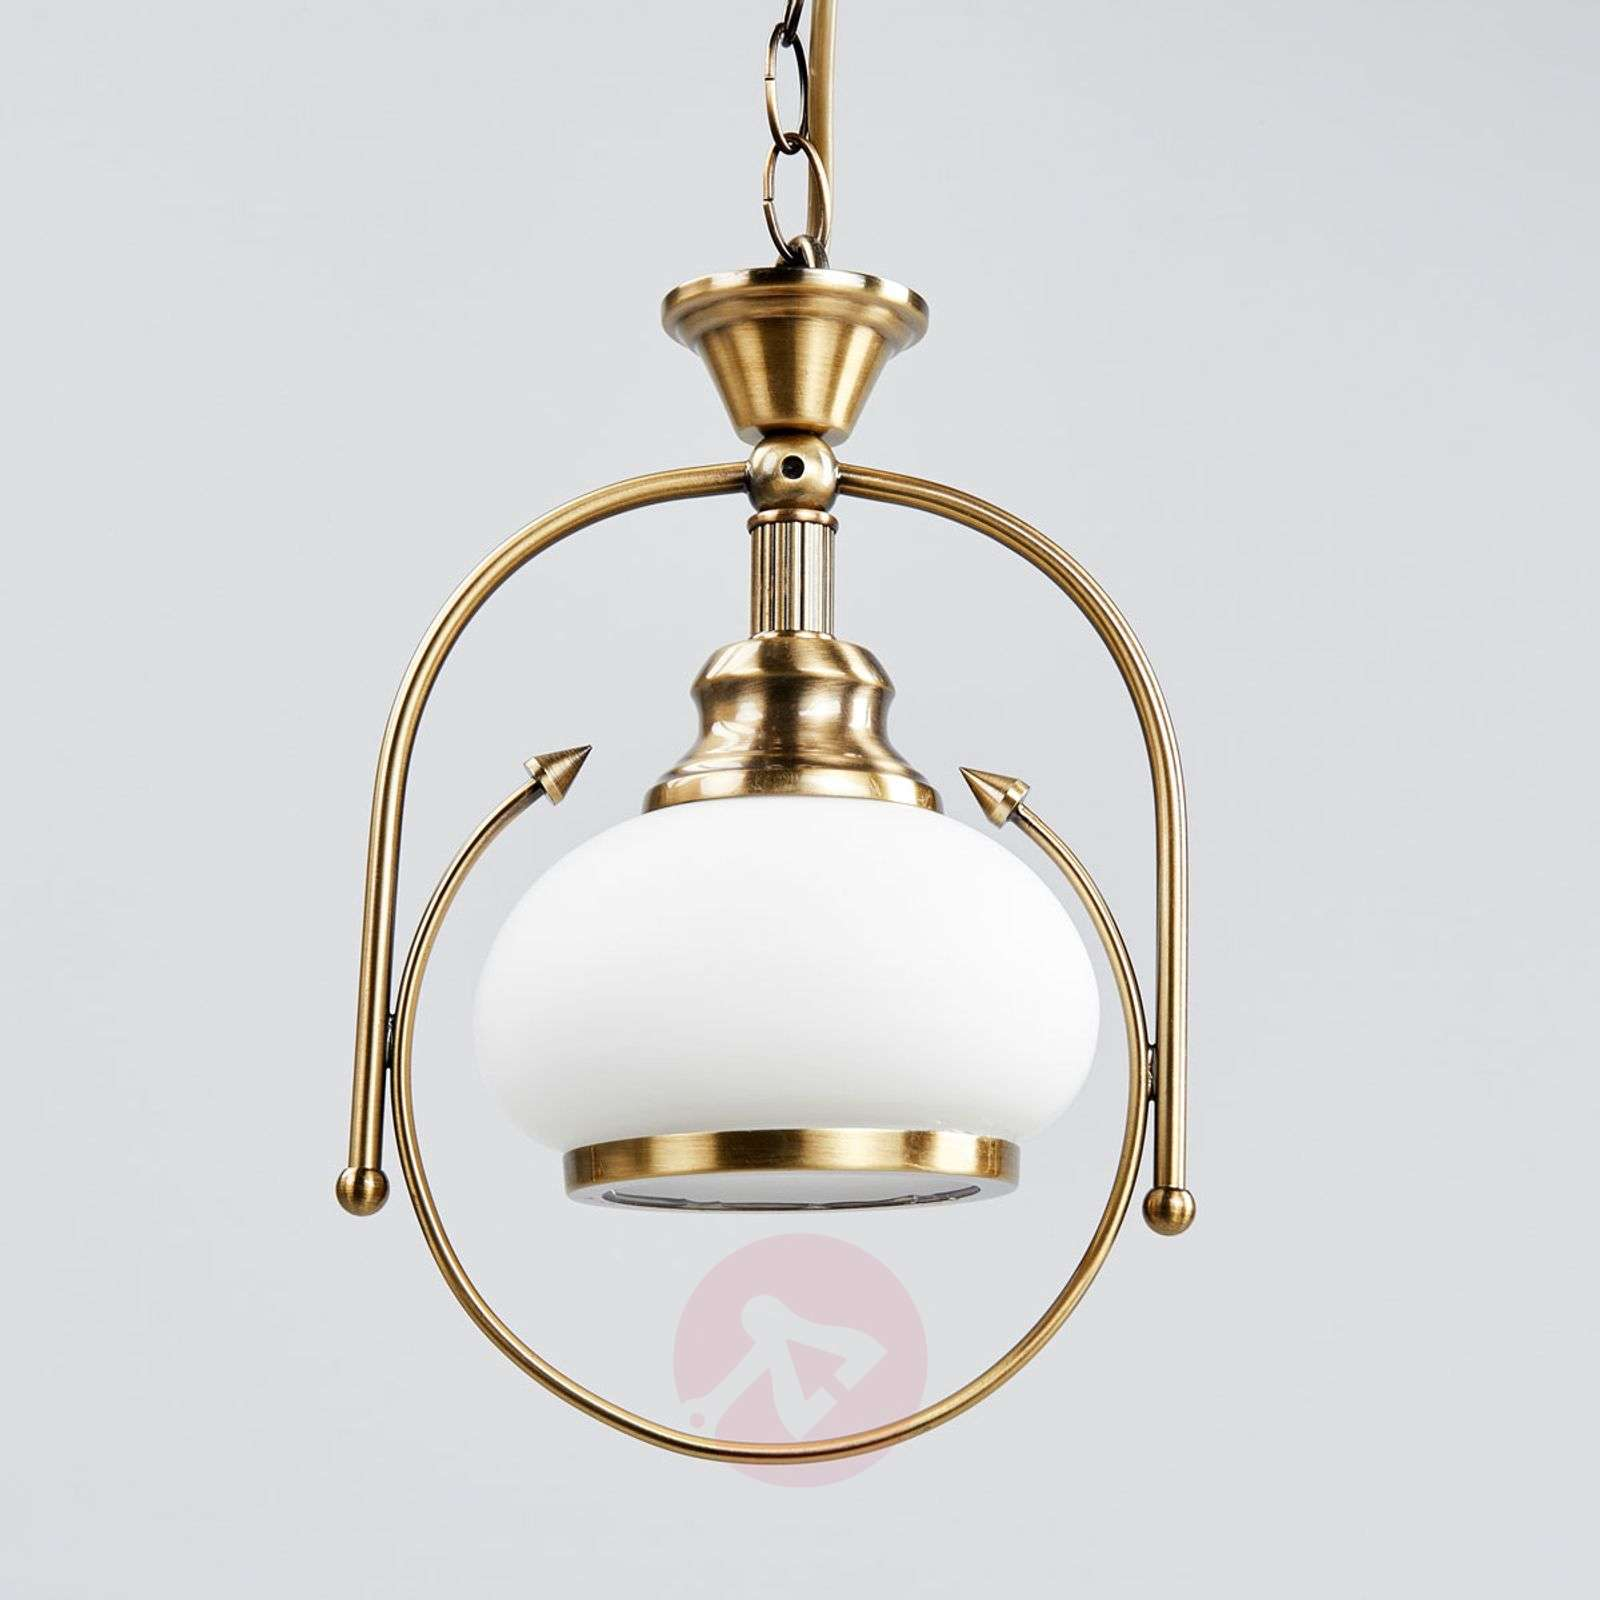 brass duane buy pendant online utility side today design light uk menu